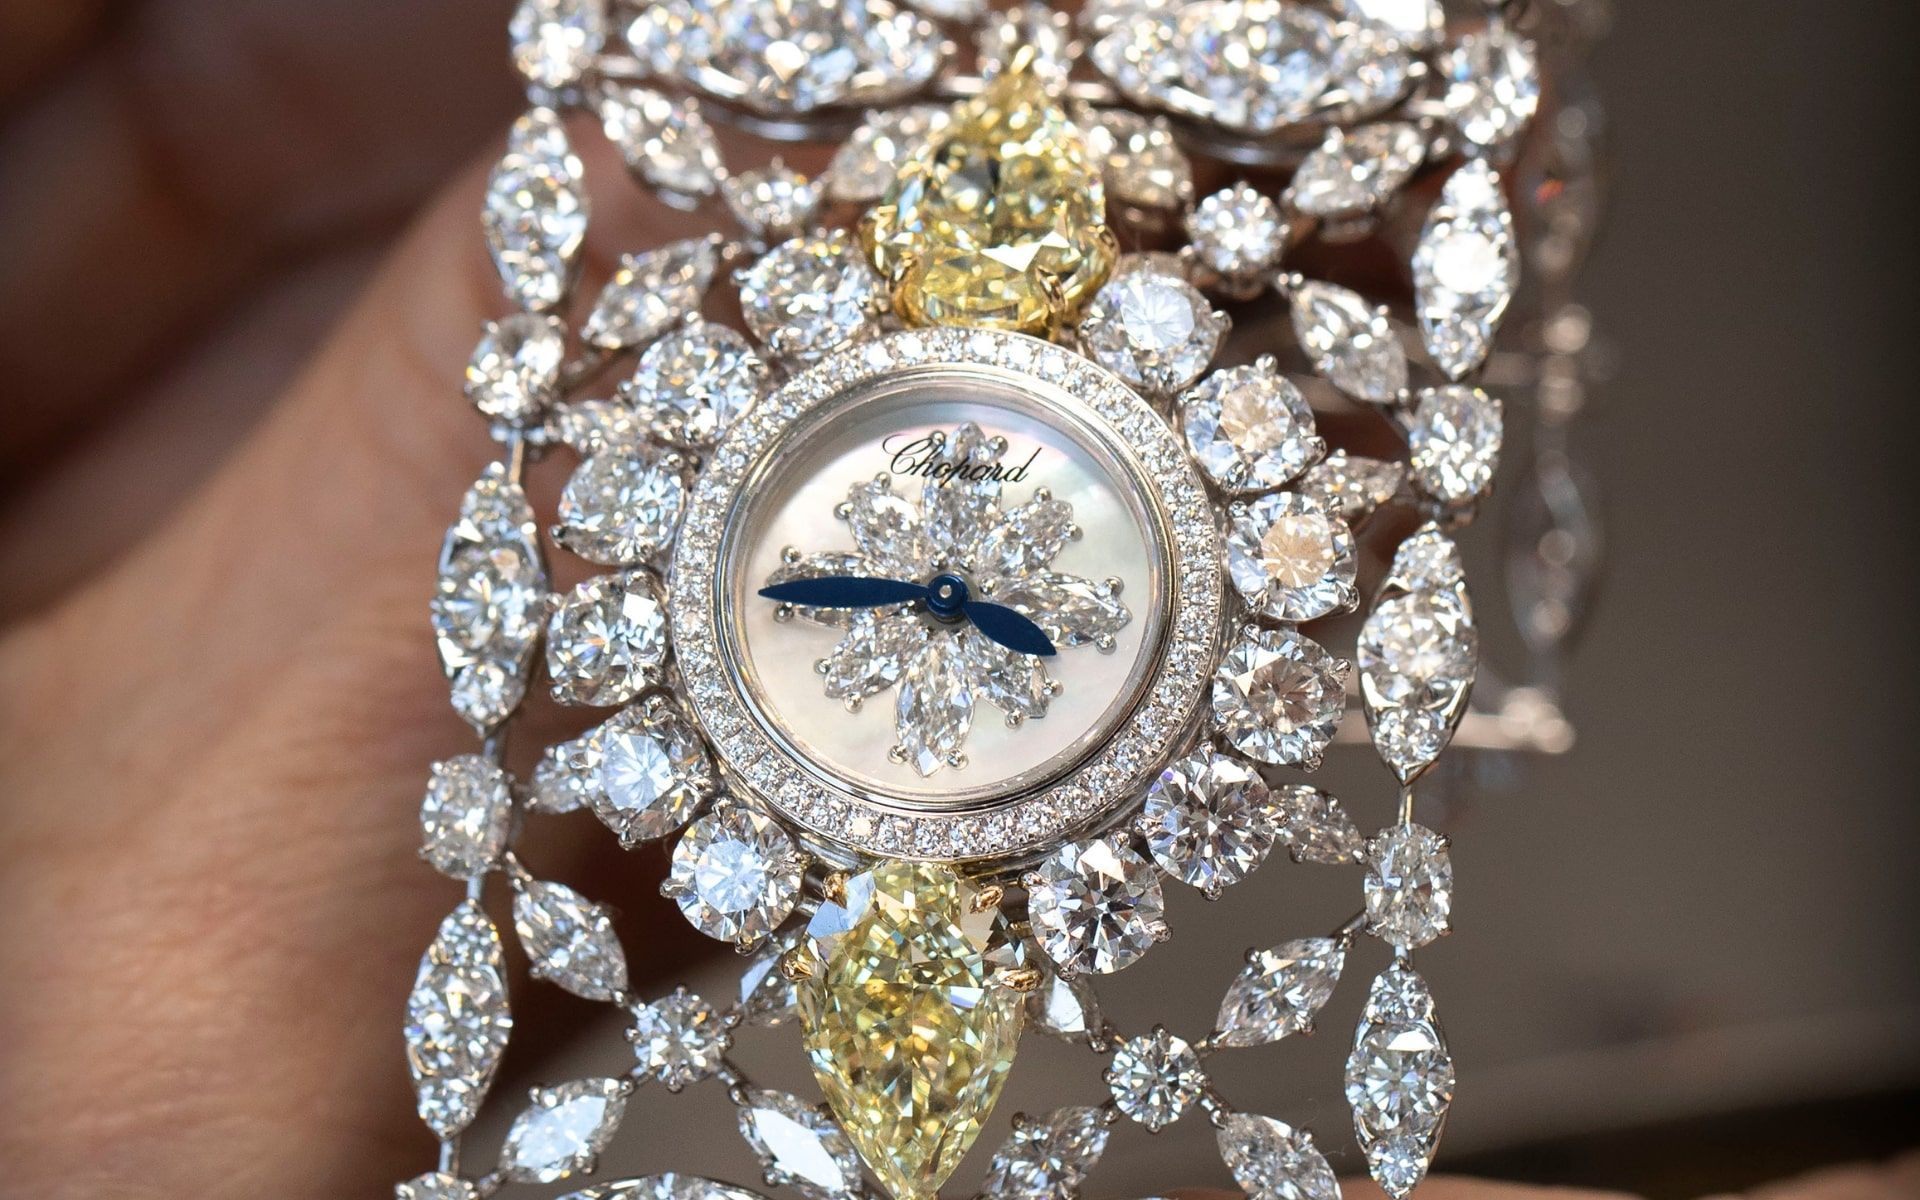 5 Beautiful Ladies' Watches From Baselworld 2019